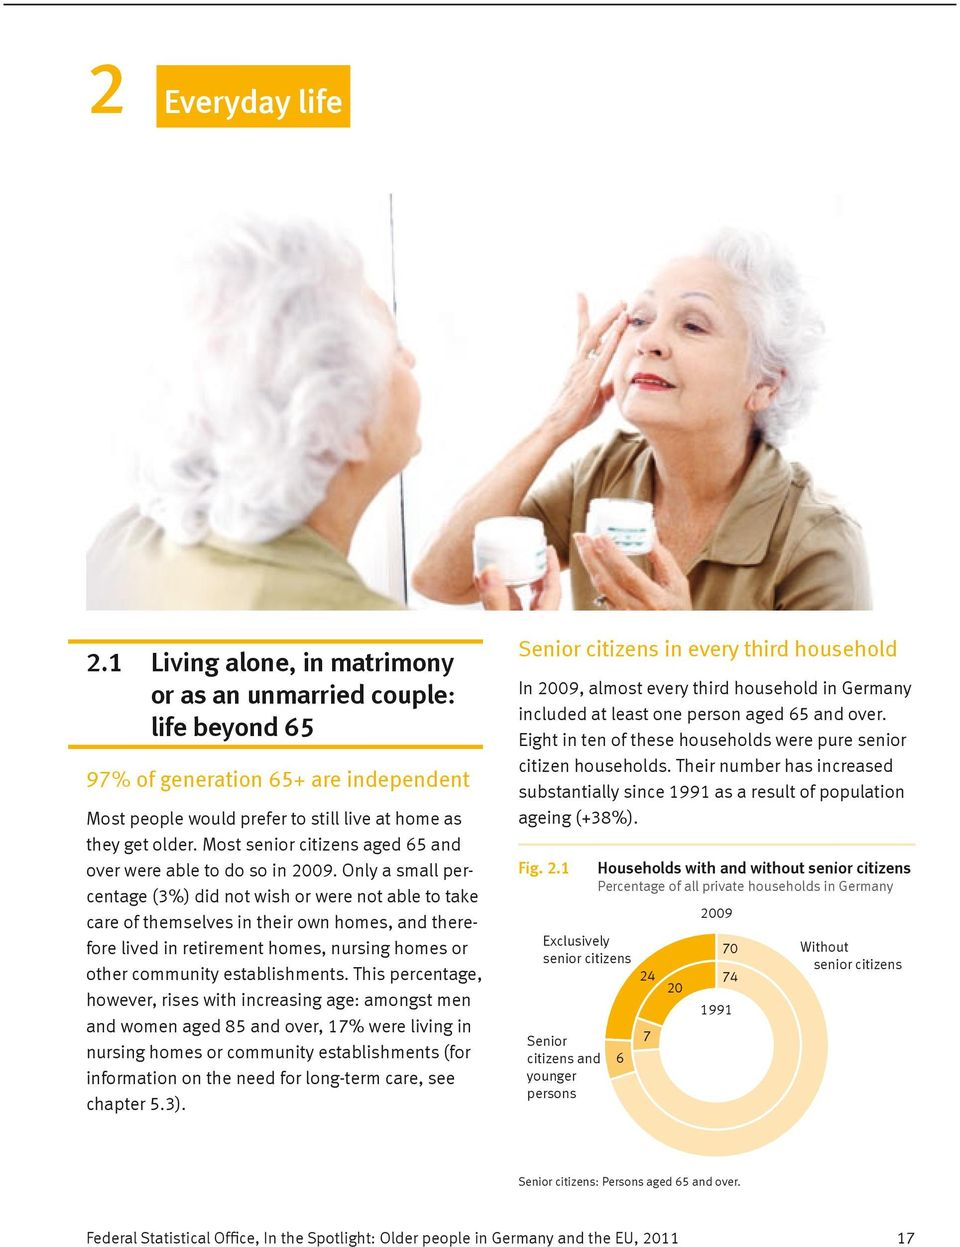 Only a small percentage (3%) did not wish or were not able to take care of themselves in their own homes, and therefore lived in retirement homes, nursing homes or other community establishments.